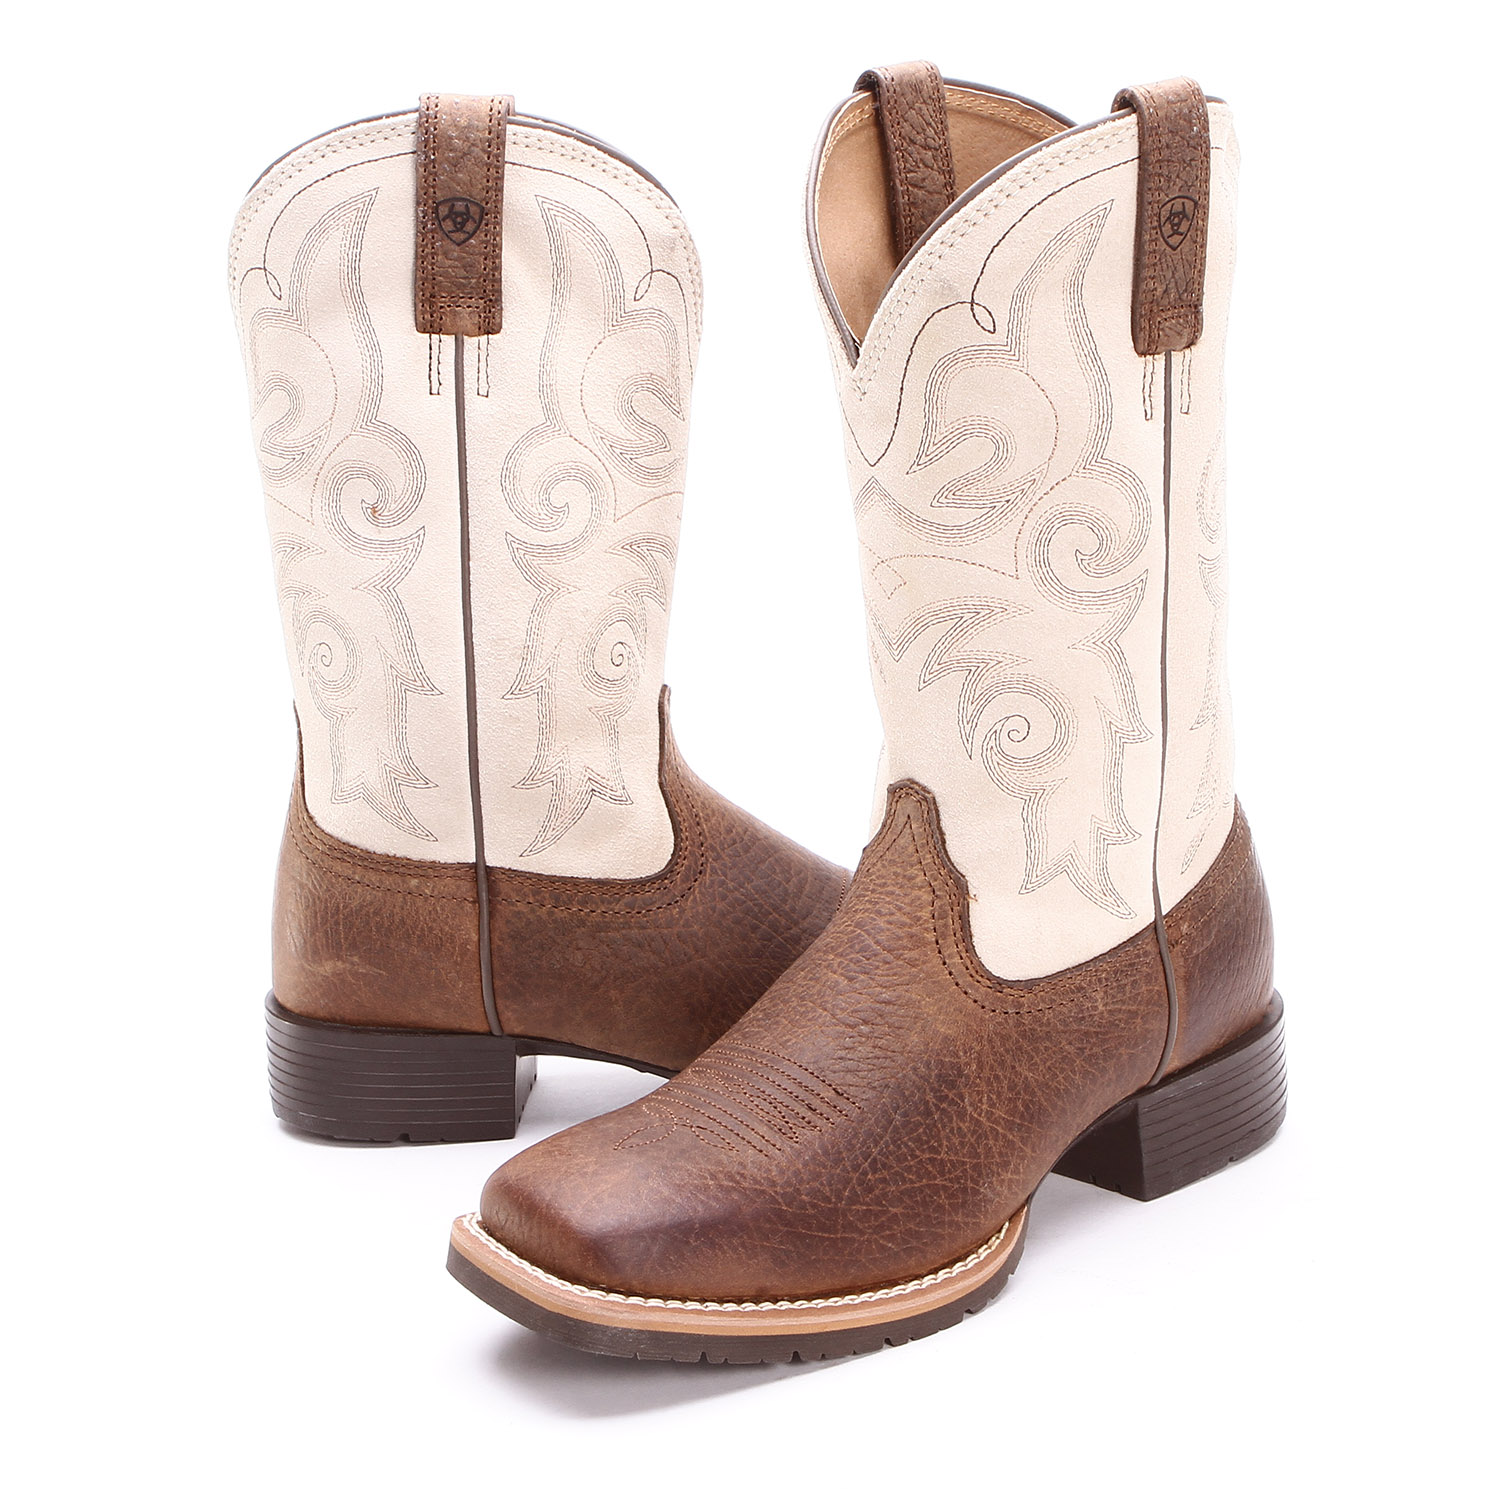 BootDaddy Collection with Ariat Women&39s Hybrid Rancher Cowgirl